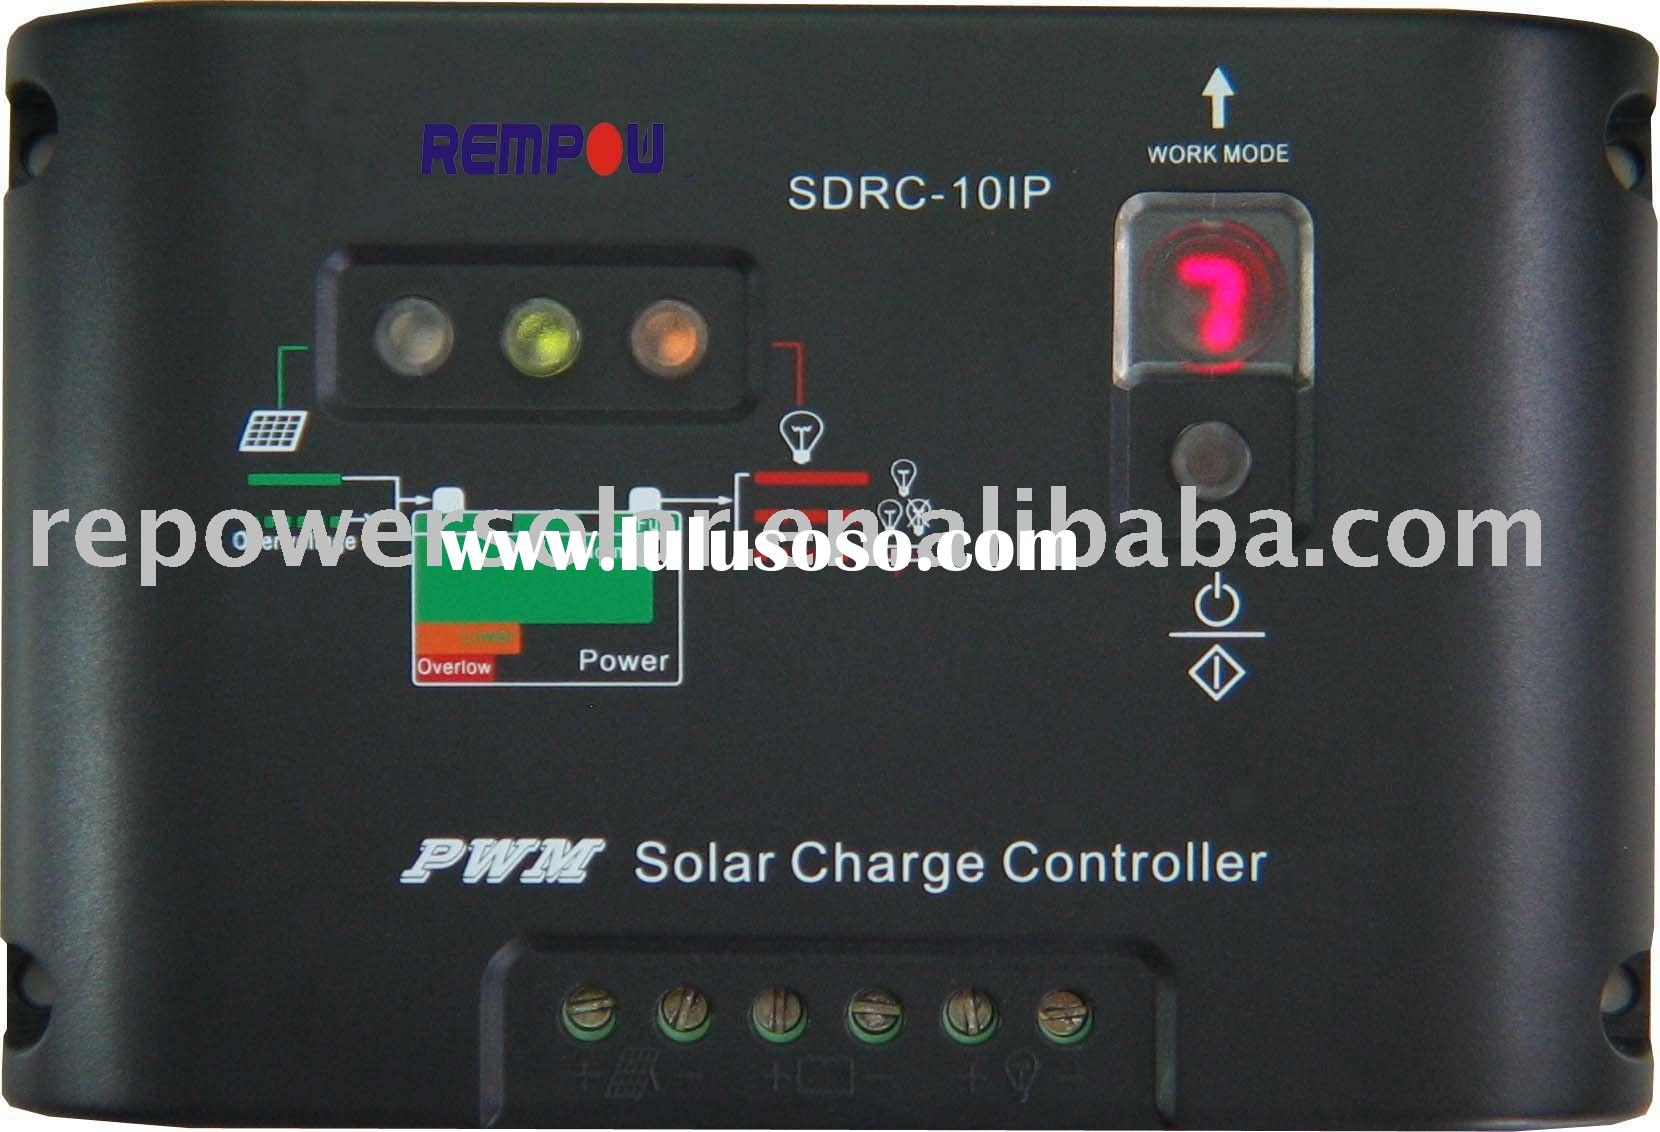 hight resolution of 12v 10a solar charge controller sdrc 10ip for dc solar street lighting